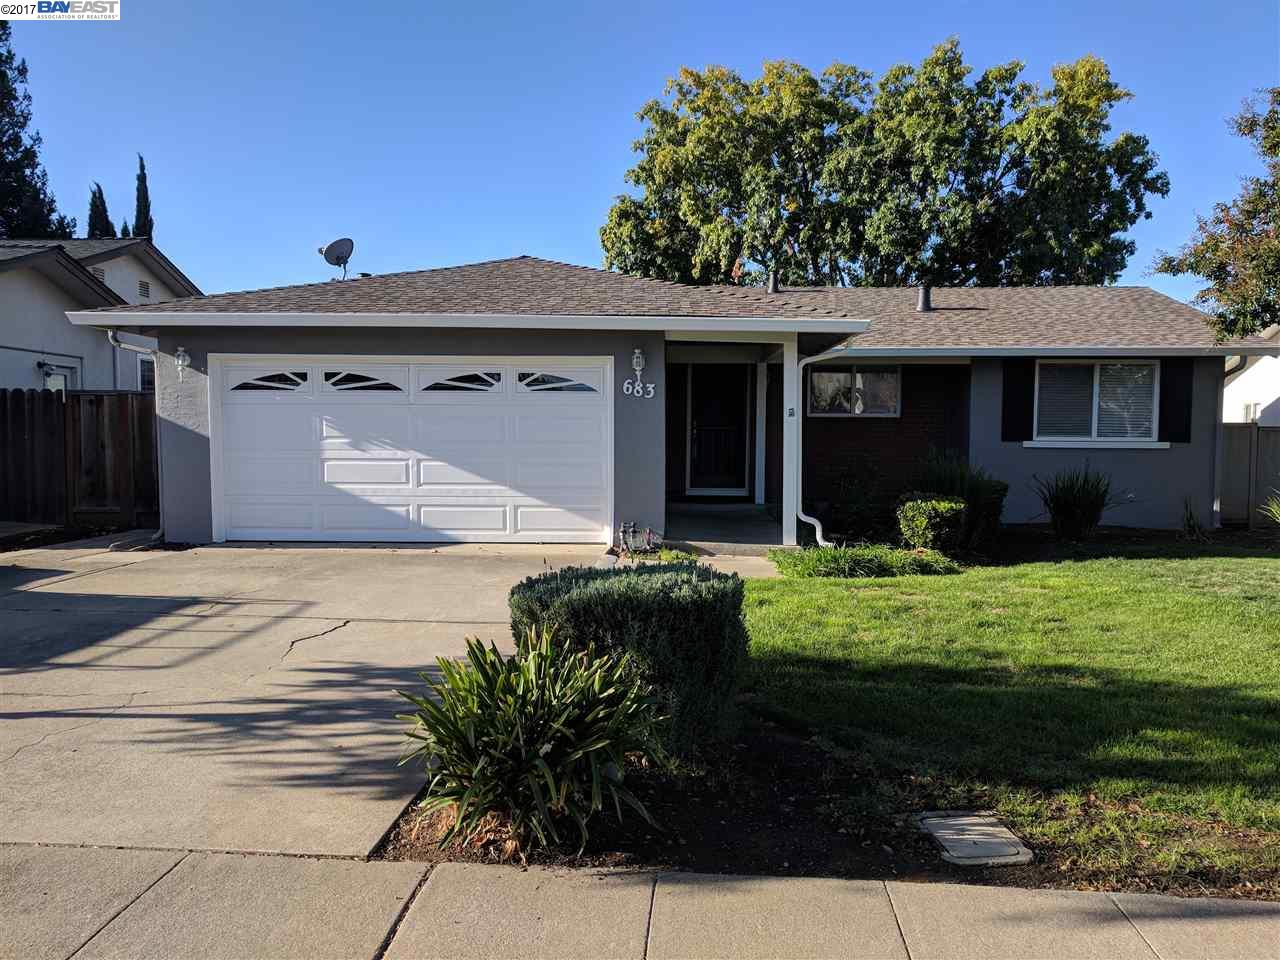 Single Family Home for Rent at 683 Lido 683 Lido Livermore, California 94550 United States